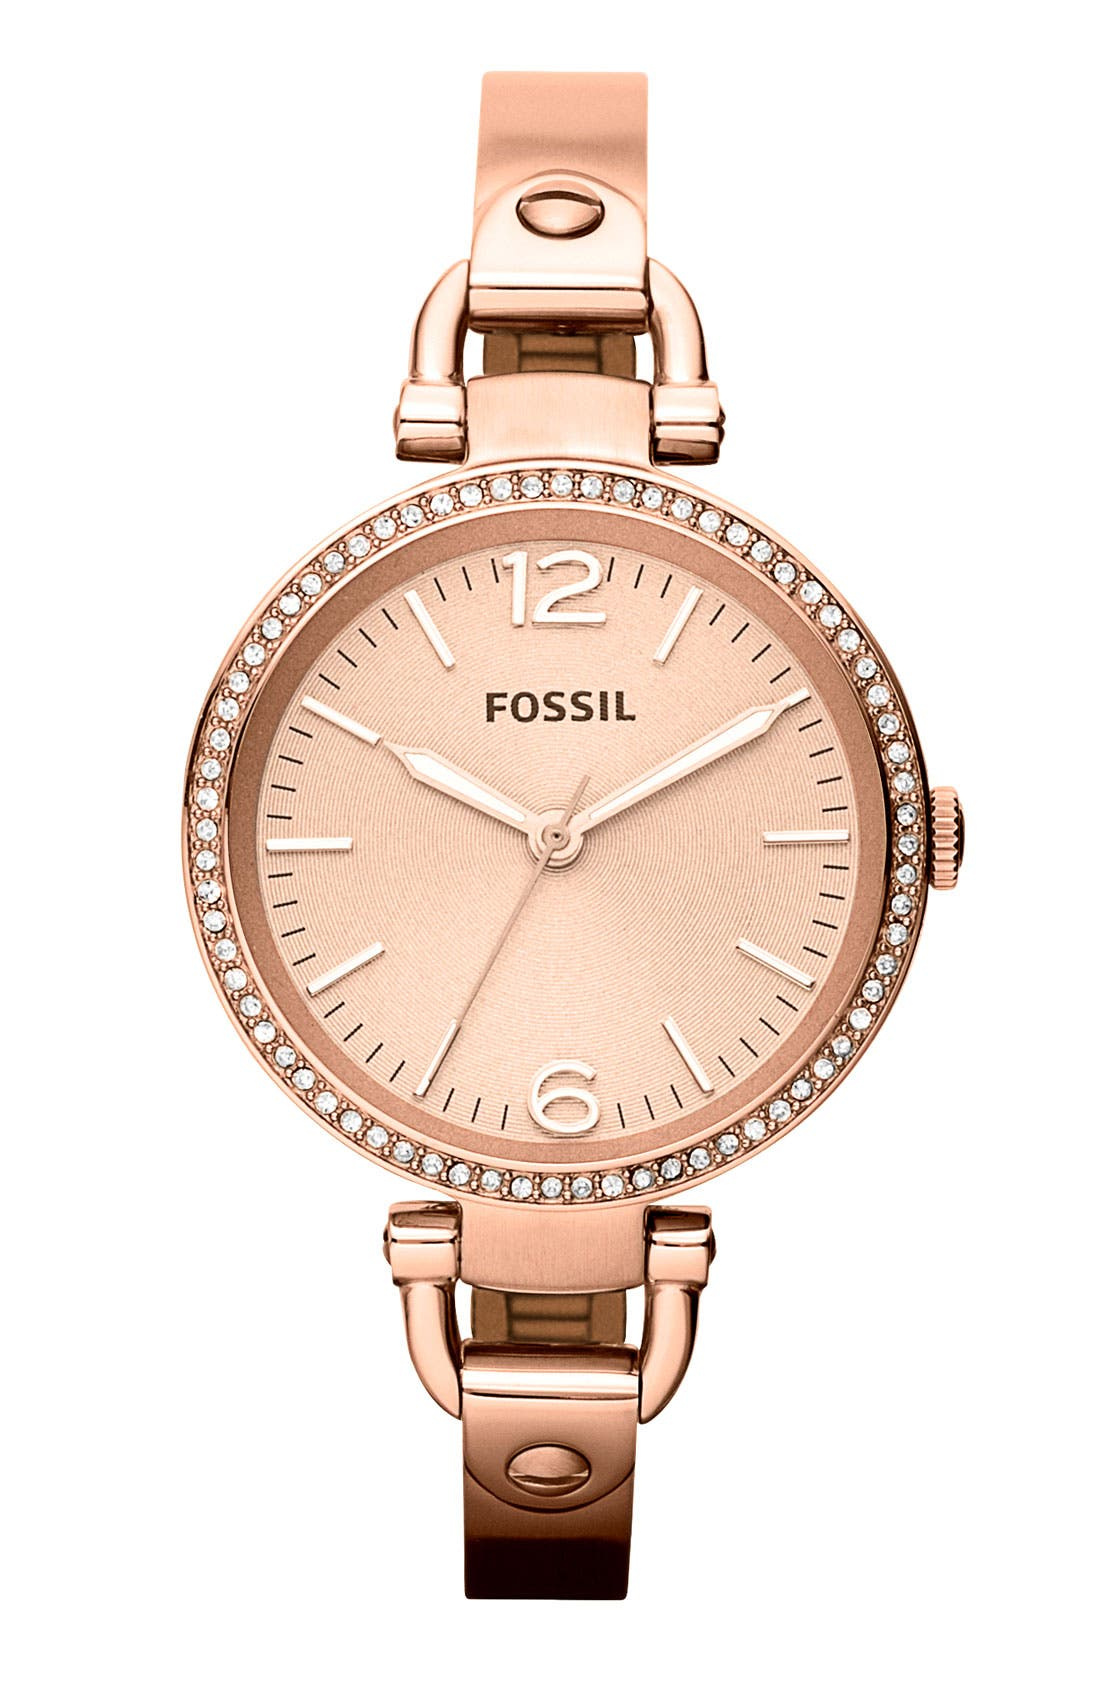 FOSSIL 'Georgia' Crystal Bezel Watch, 32mm, Main, color, ROSE GOLD